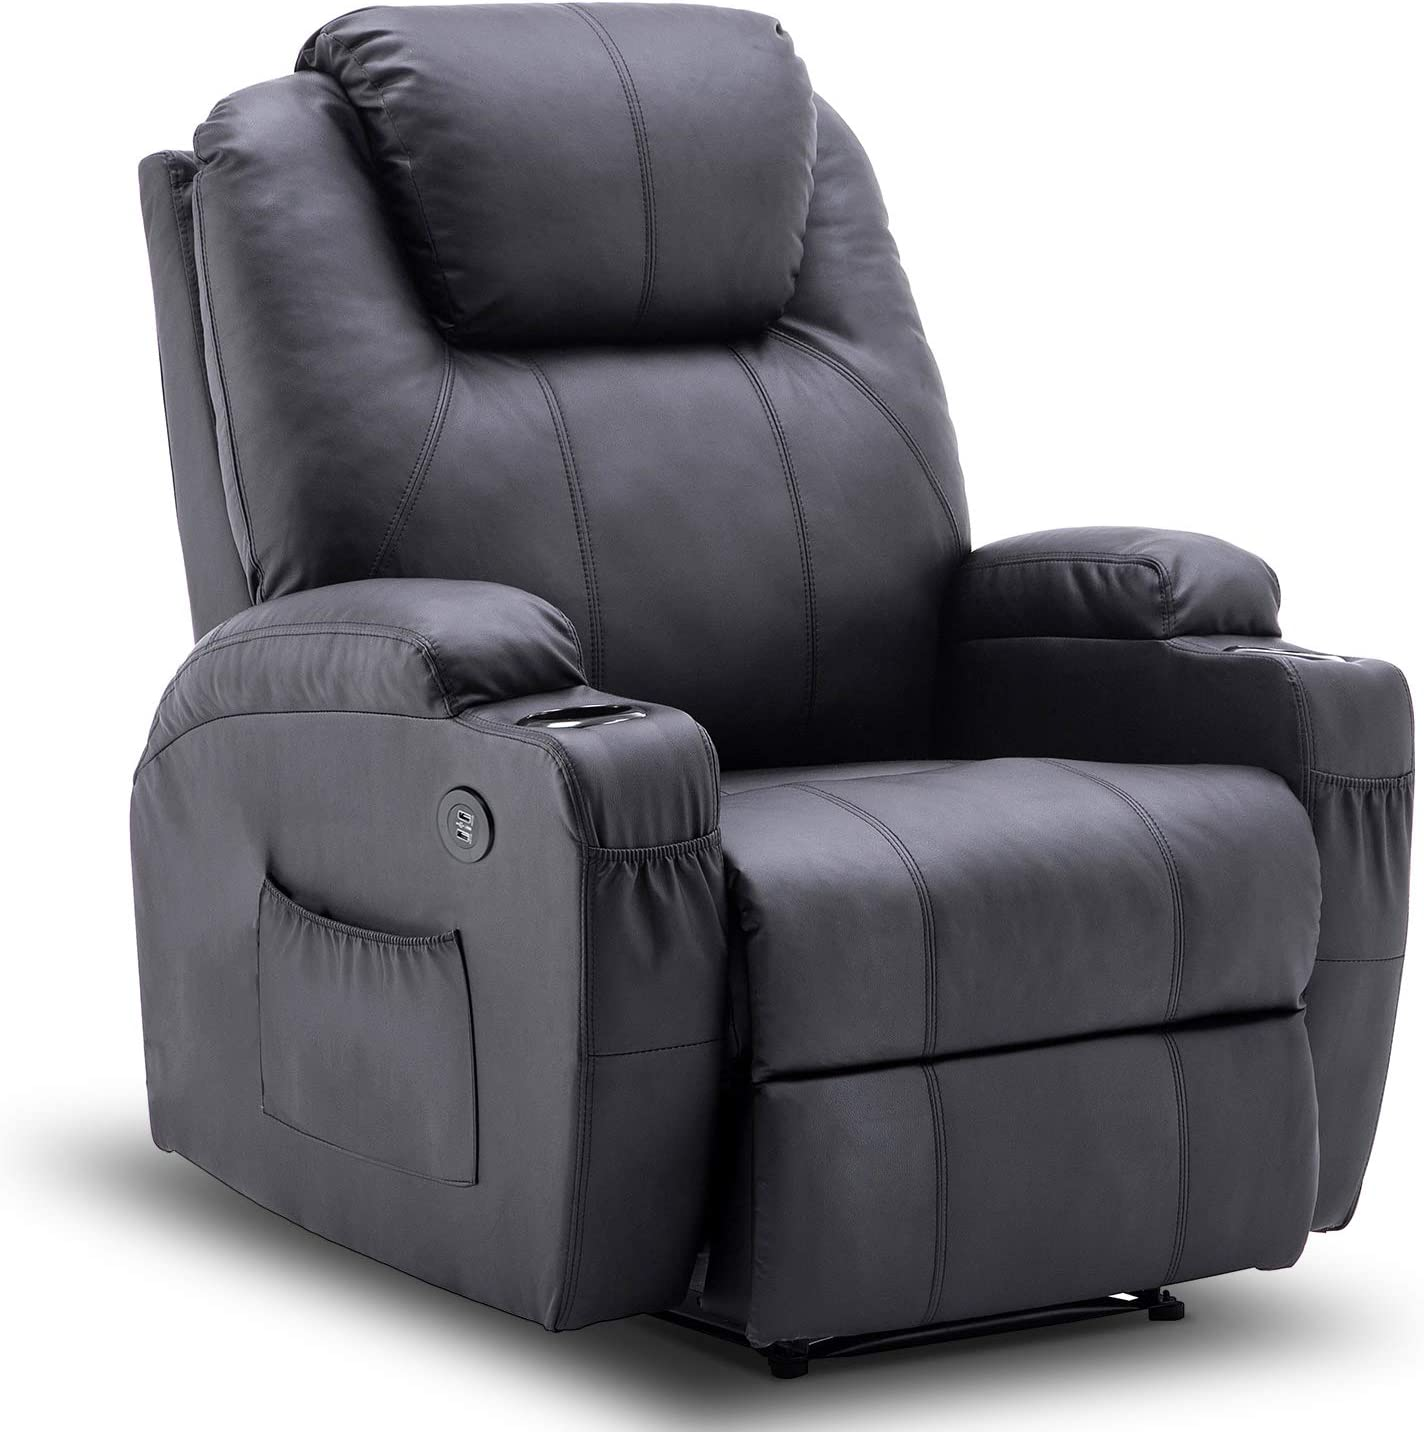 Amazon Com Mcombo Electric Power Recliner Chair With Massage And Heat 2 Positions Usb Charge Ports 2 Side Pockets And Cup Holders Faux Leather 7050 Black Kitchen Dining